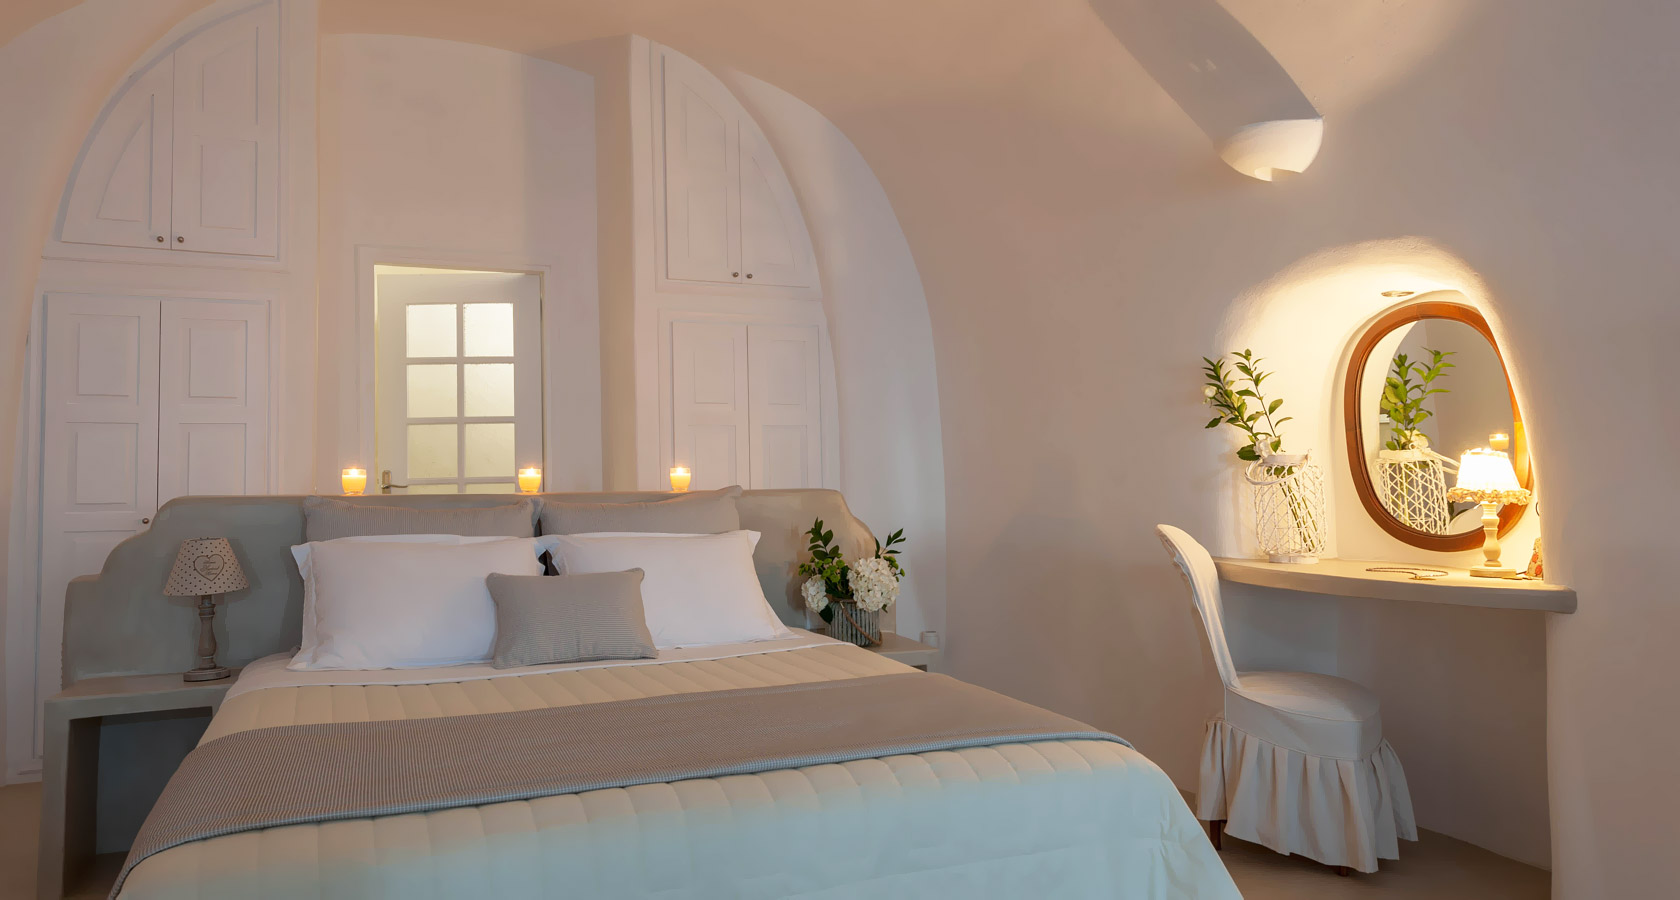 Thirea luxury suites in Oia Santorini – The bedroom